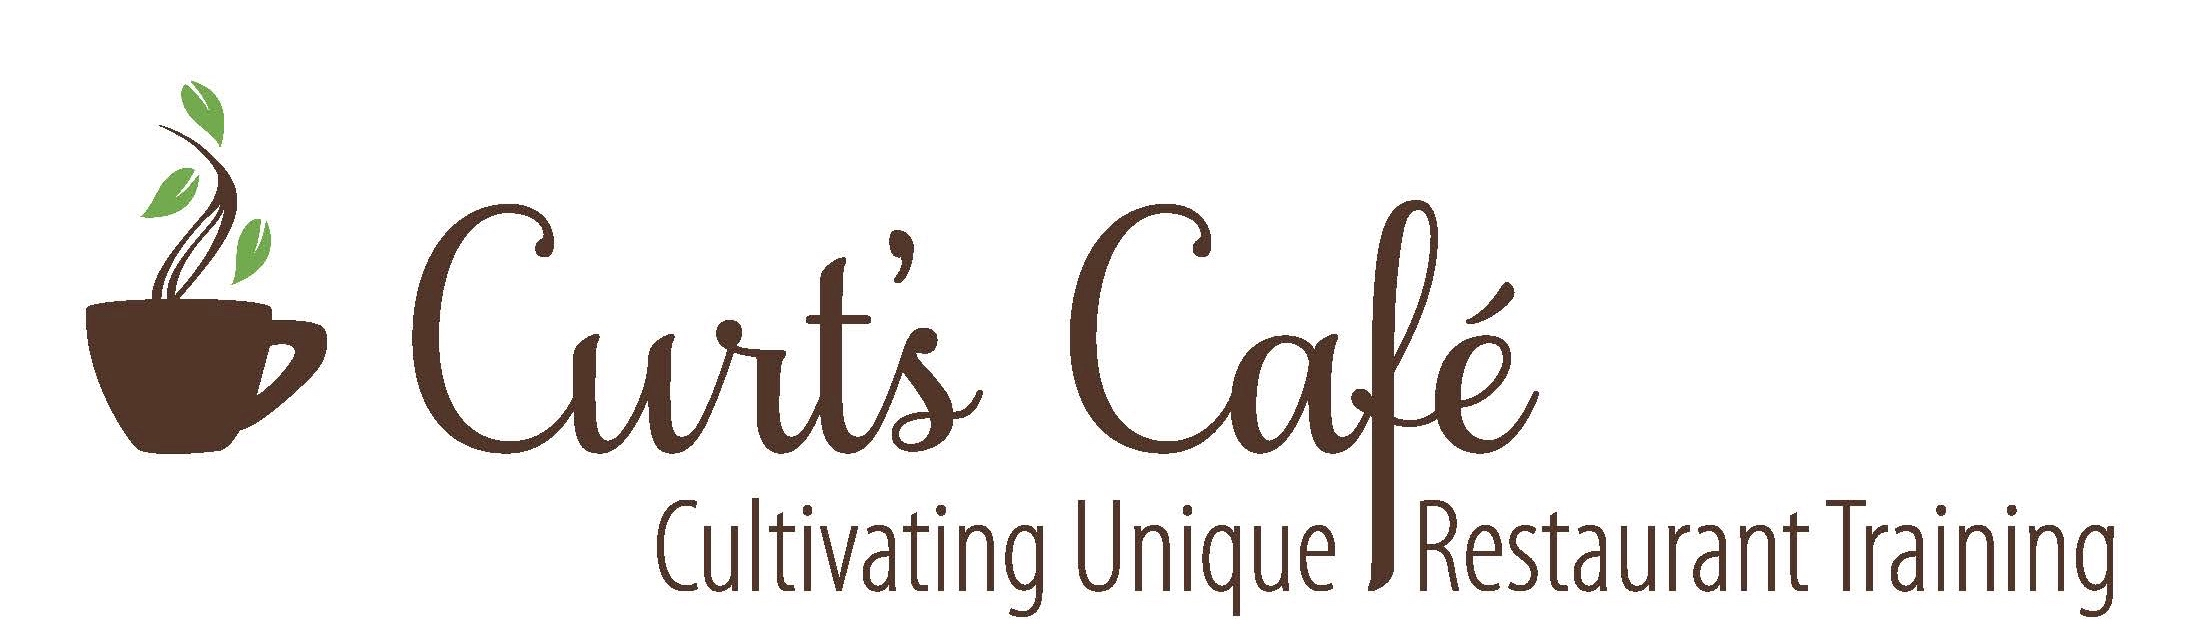 Curt'sCafe_Logo High Resolution (9).jpg